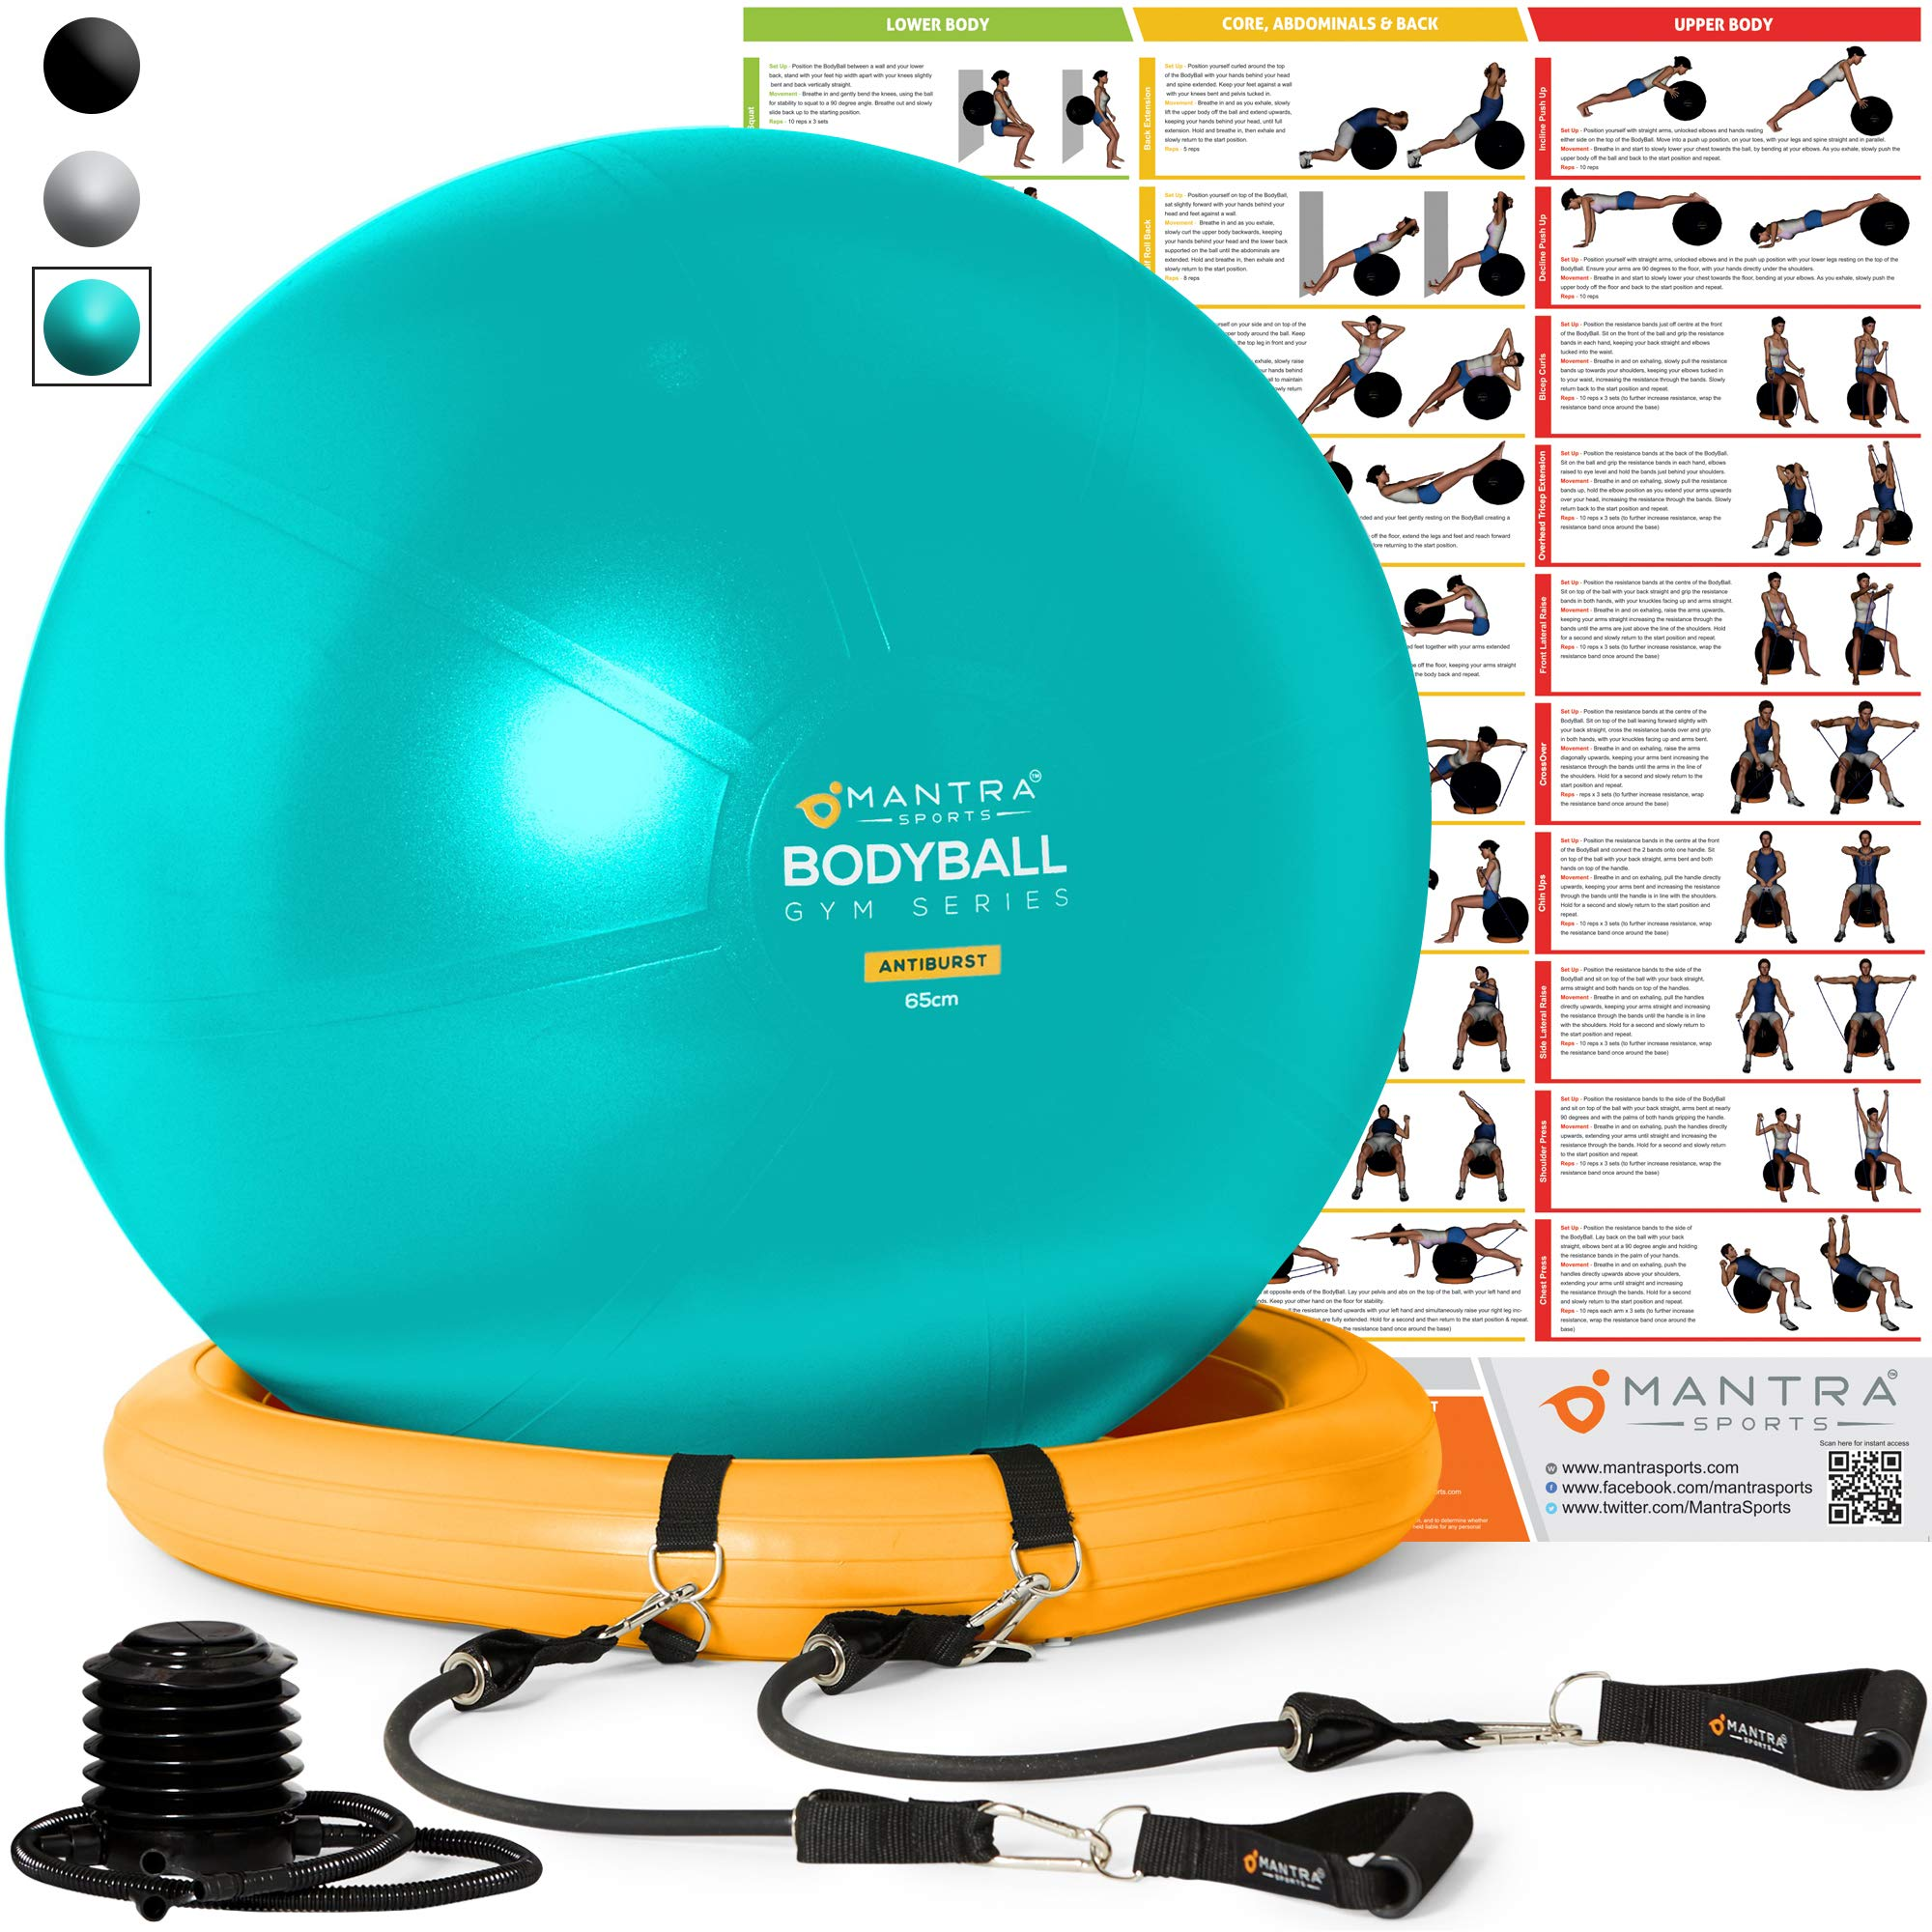 Exercise Ball Chair - 65cm & 75cm Yoga Fitness Pilates Ball & Stability Base for Home Gym & Office - Resistance Bands, Workout Poster & Pump. Improves Balance, Core Strength & Posture - Men & Women by Mantra Sports